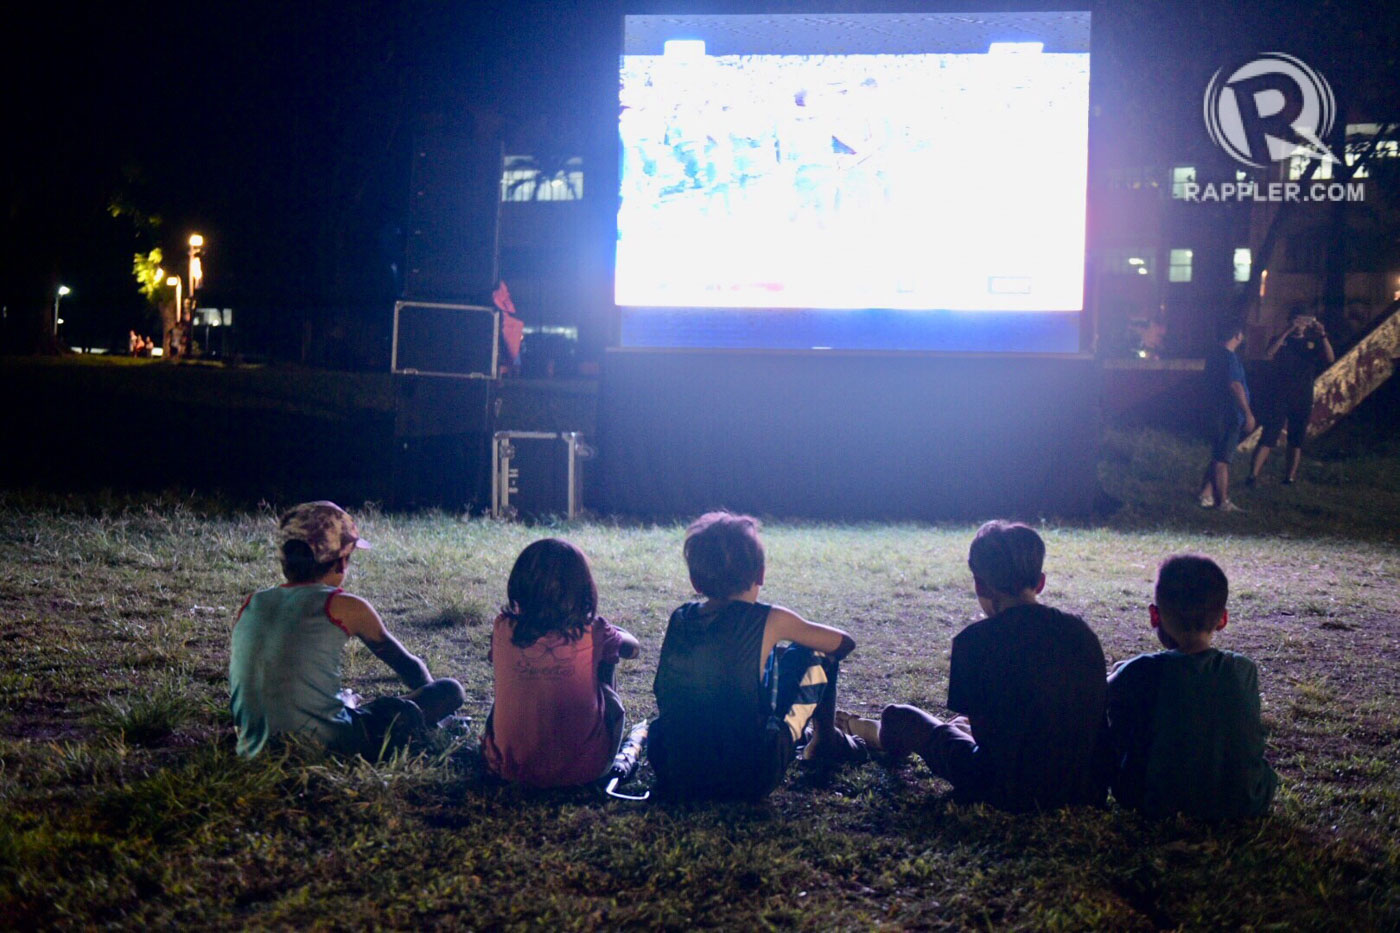 GLUED. The thrilling showdown also gets some kids hooked. Photo by Leanne Jazul/Rappler